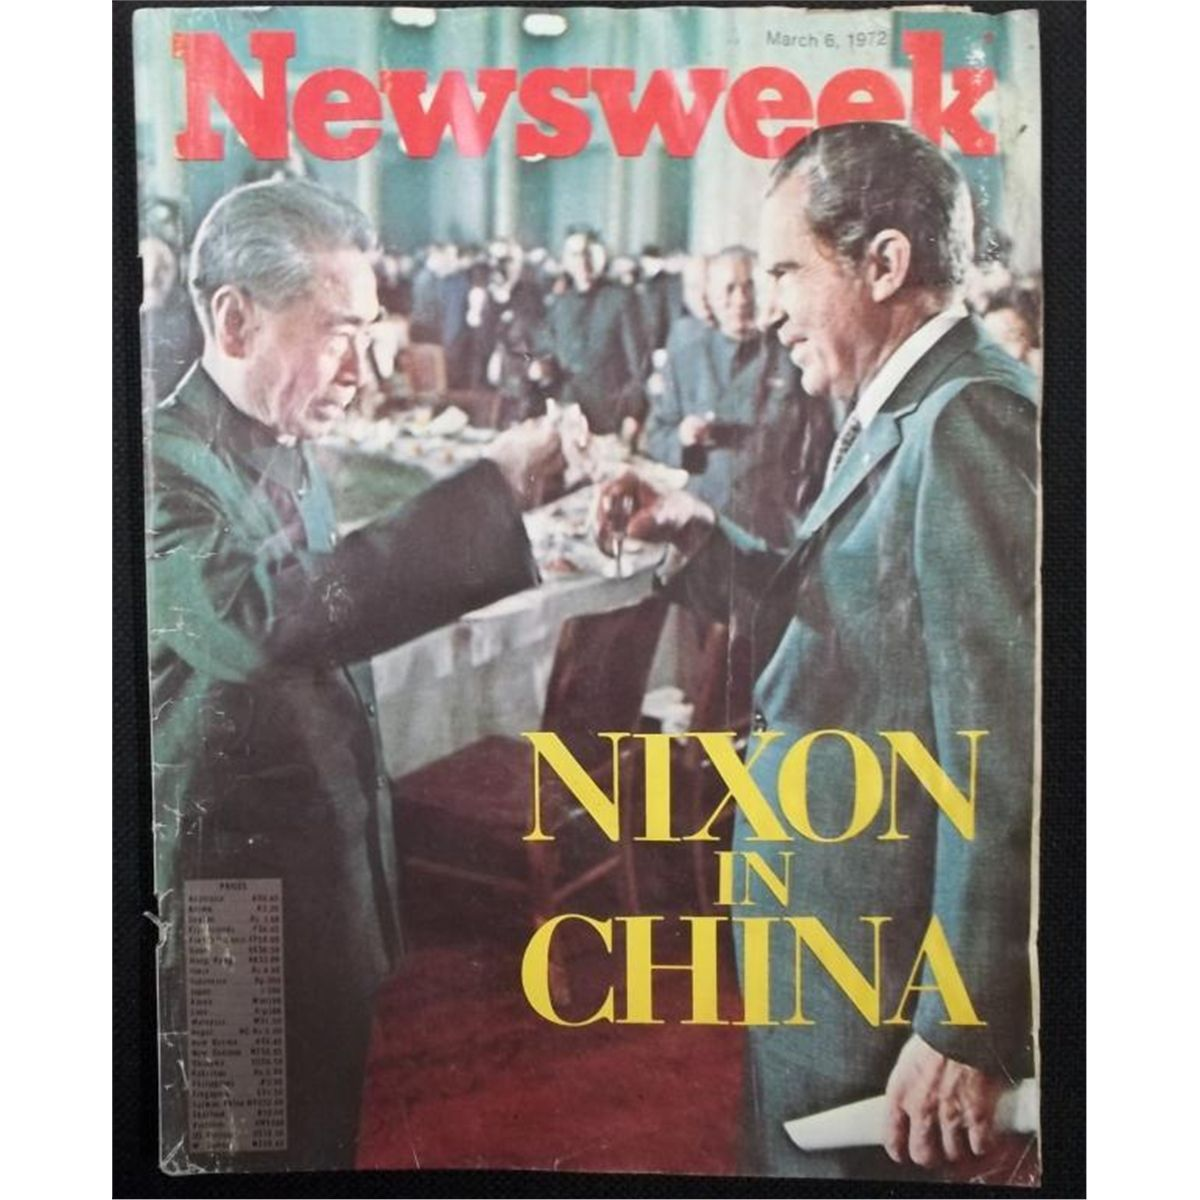 president nixons visit to china The goal of nixon's visit was to open trading with china again hewas the first president to visit communist china.